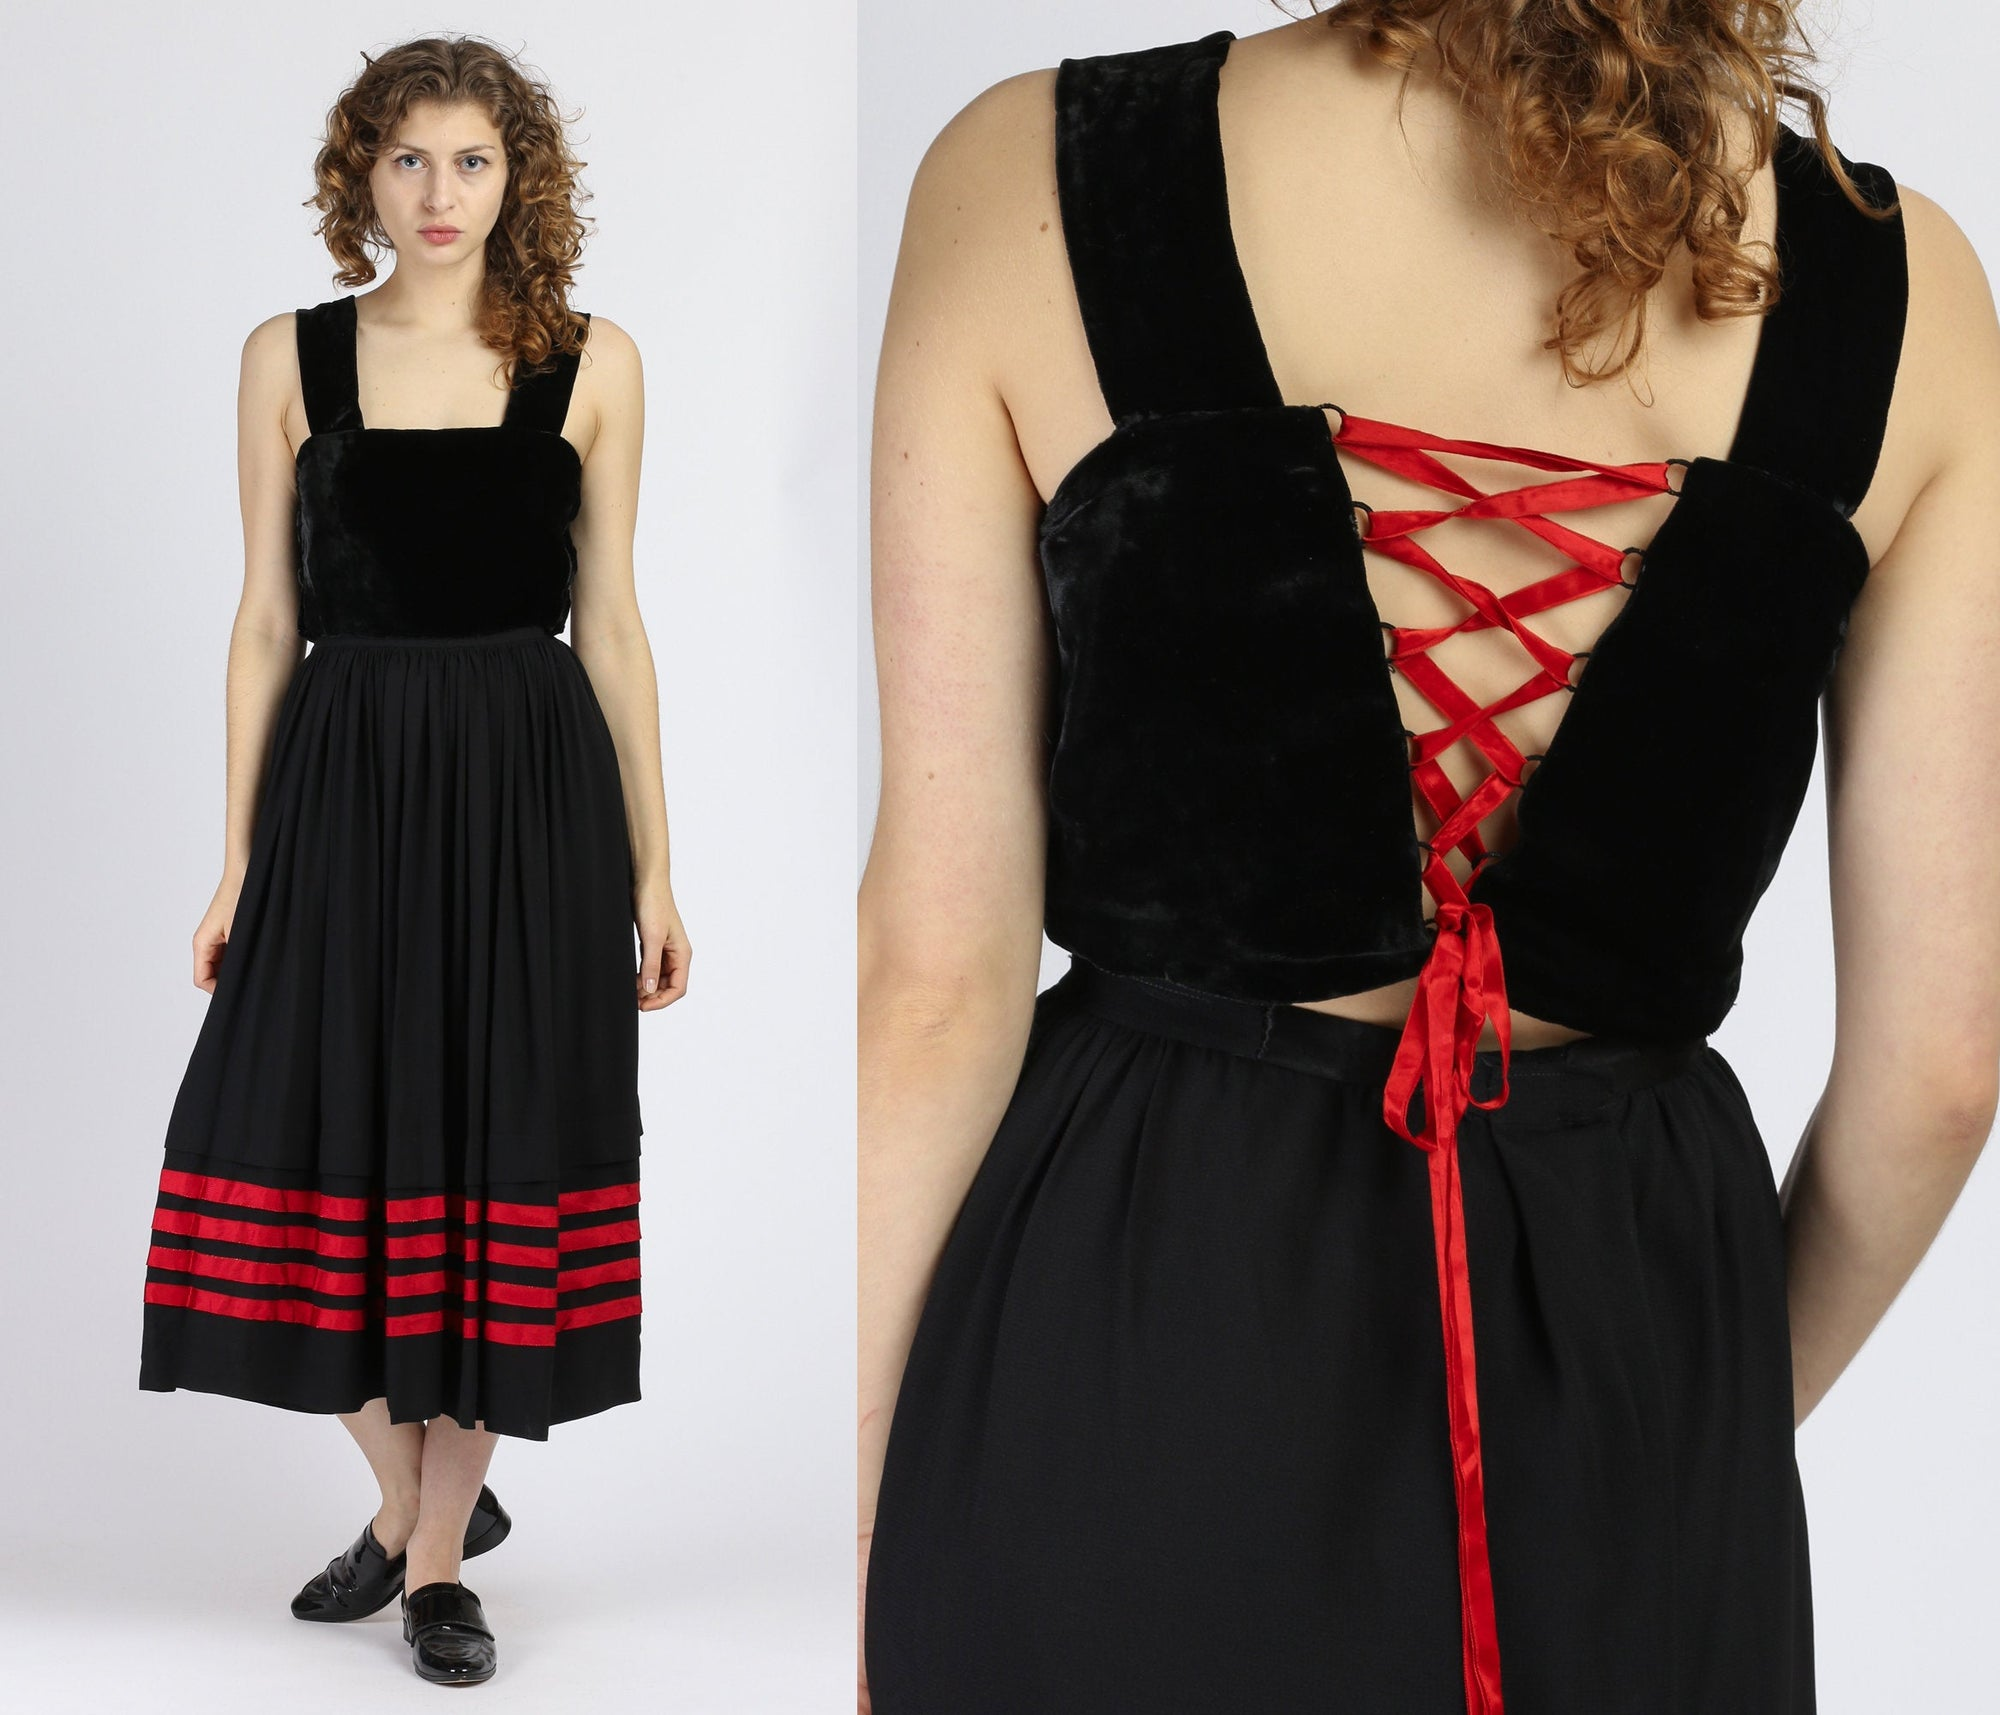 Vintage 1940s Black & Red Lace Up Corset Velvet Dress - Small to Medium